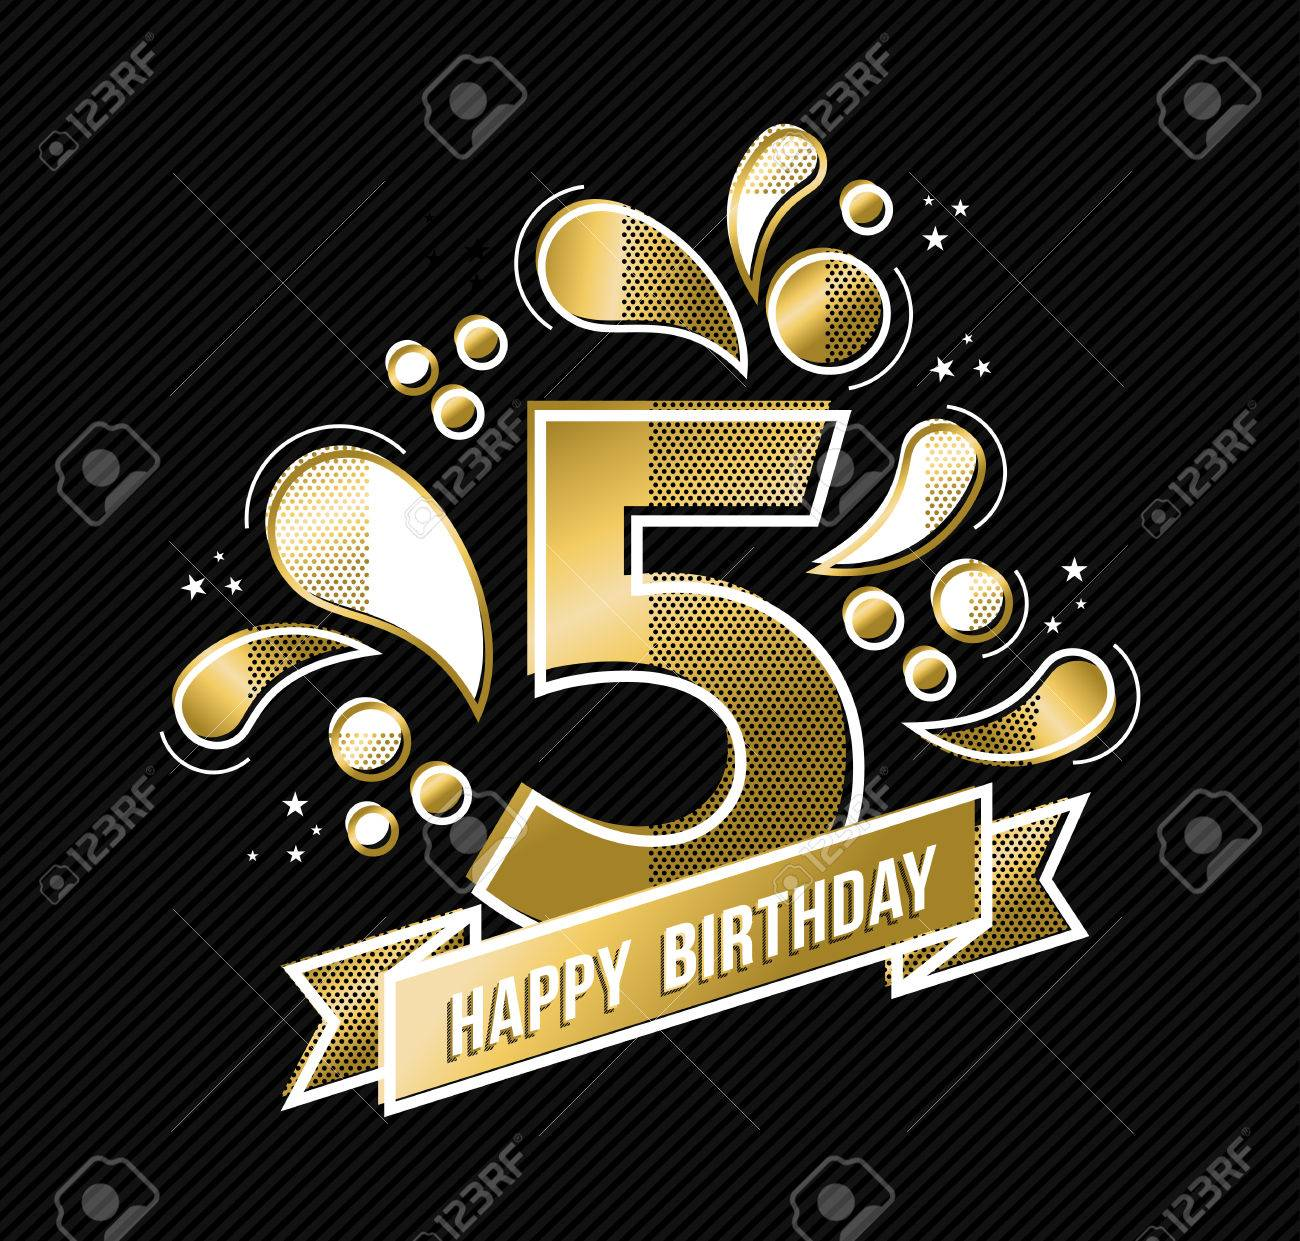 Happy birthday number 5, gold color design for five years in modern style with geometric shapes. vector. - 63255310